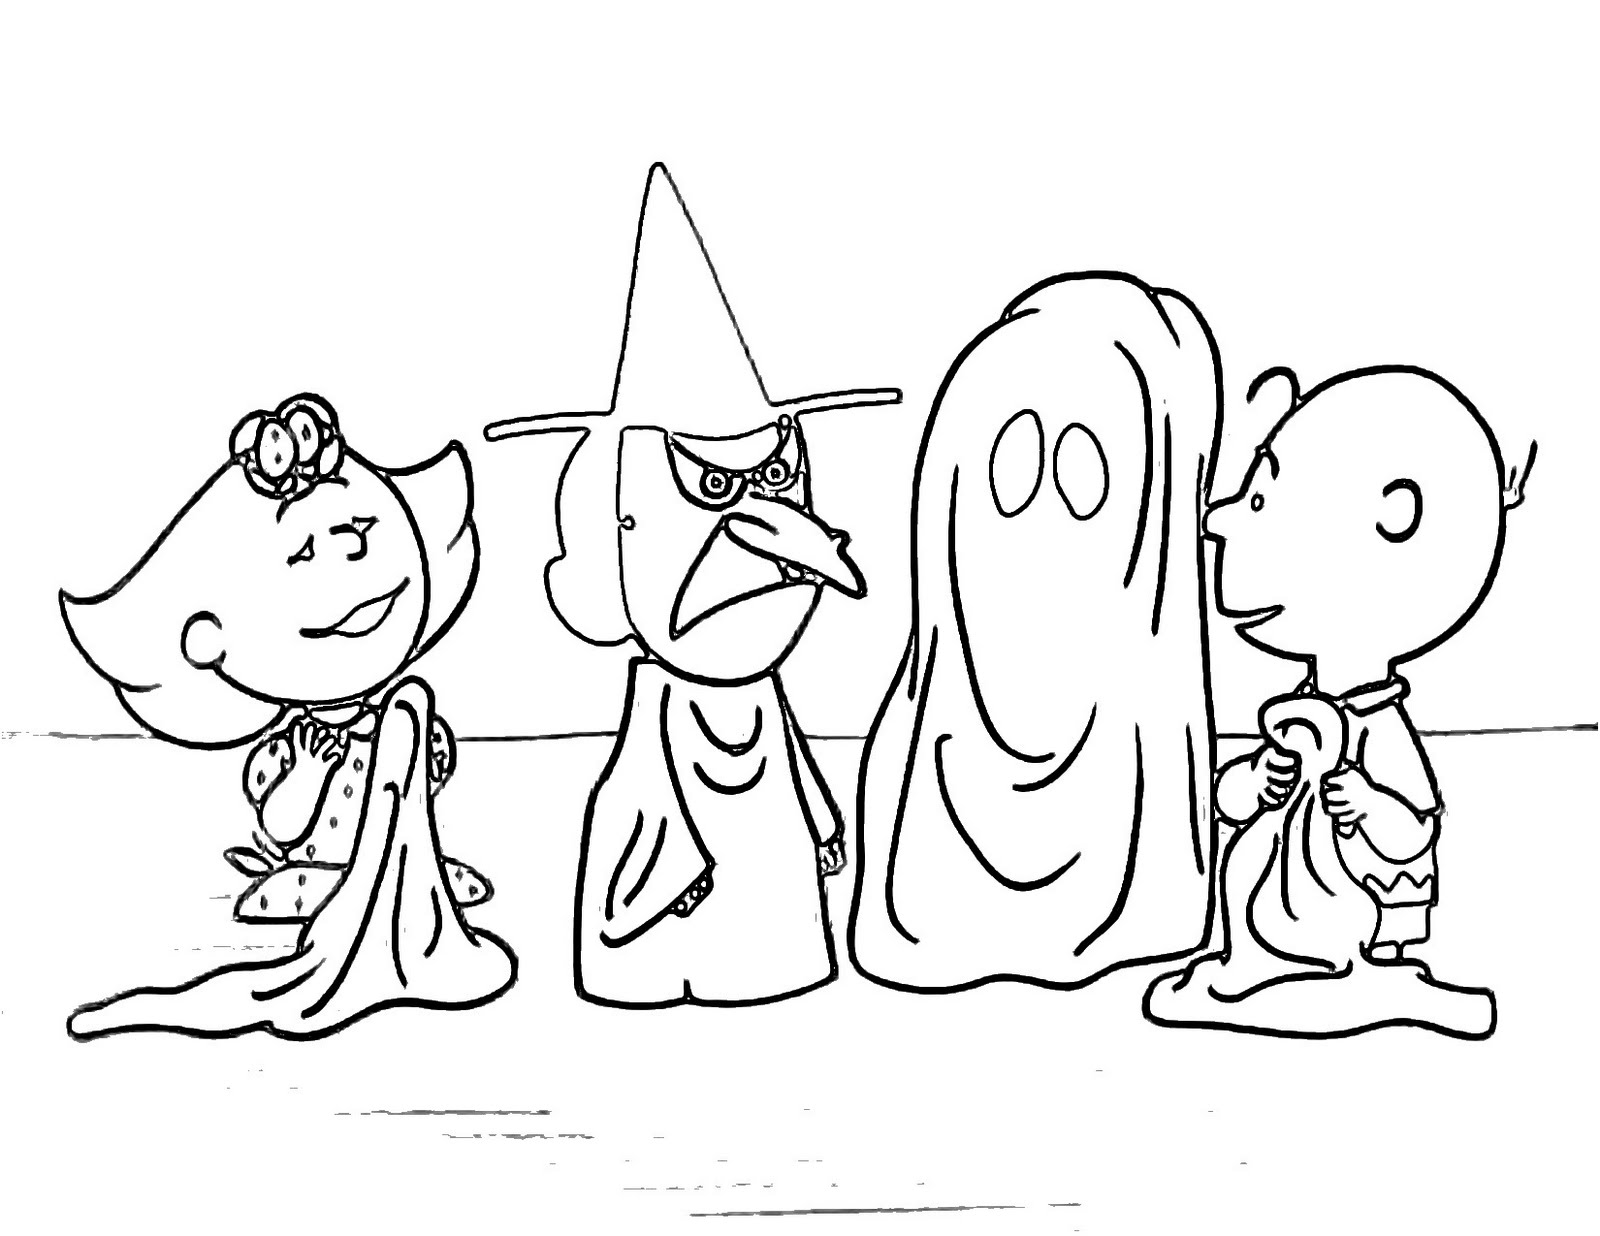 peanuts halloween coloring pages - halloween coloring pages